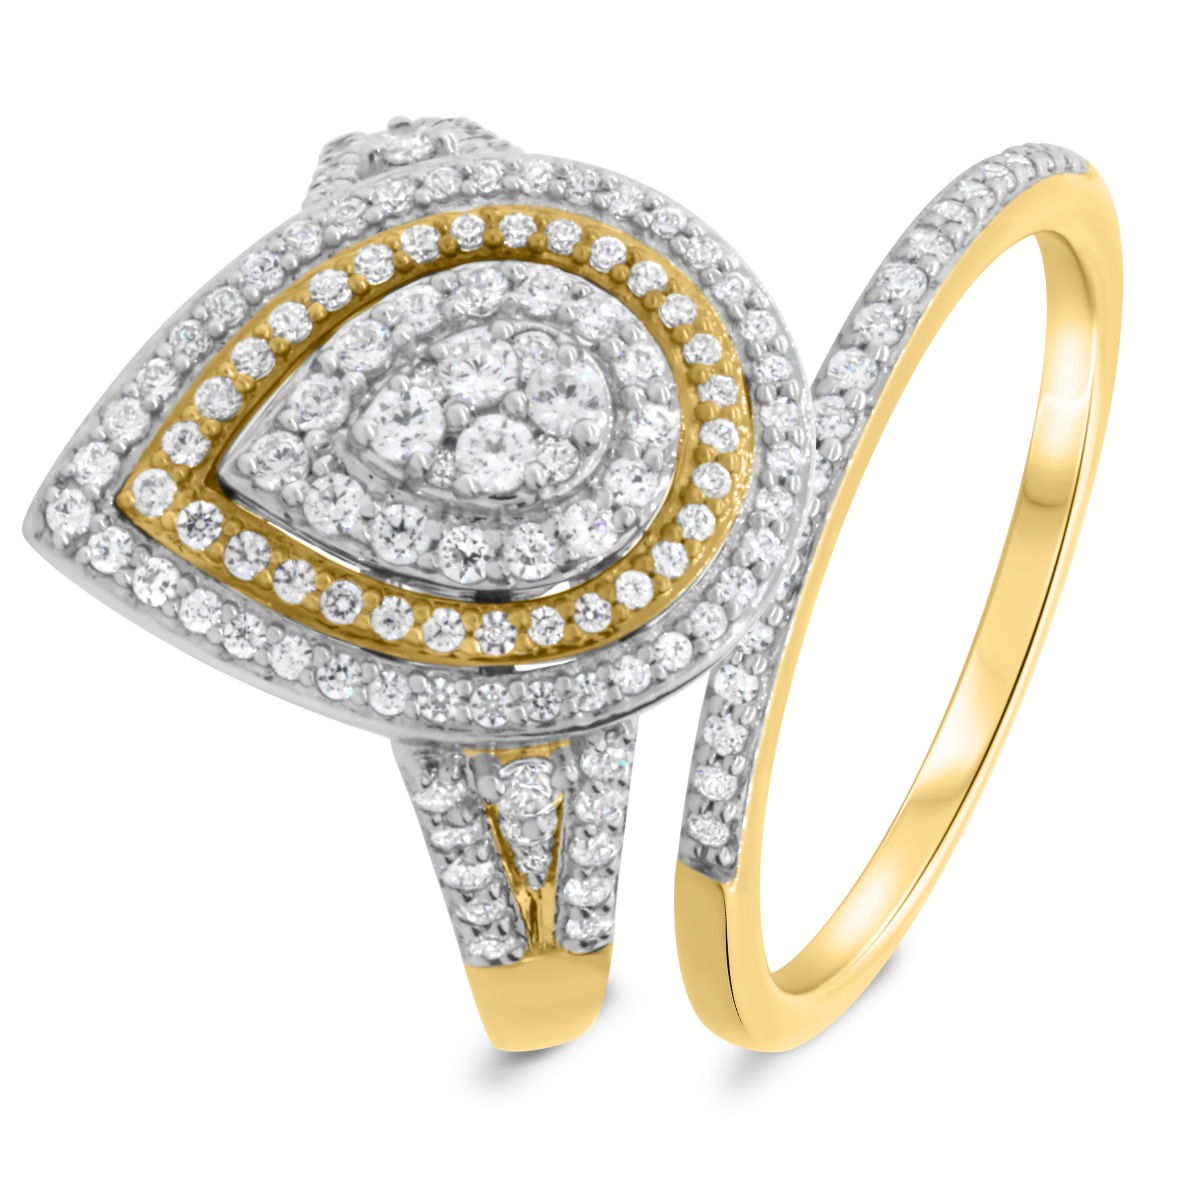 1 Carat T.W. Diamond Matching Bridal Ring Set 14K Yellow Gold